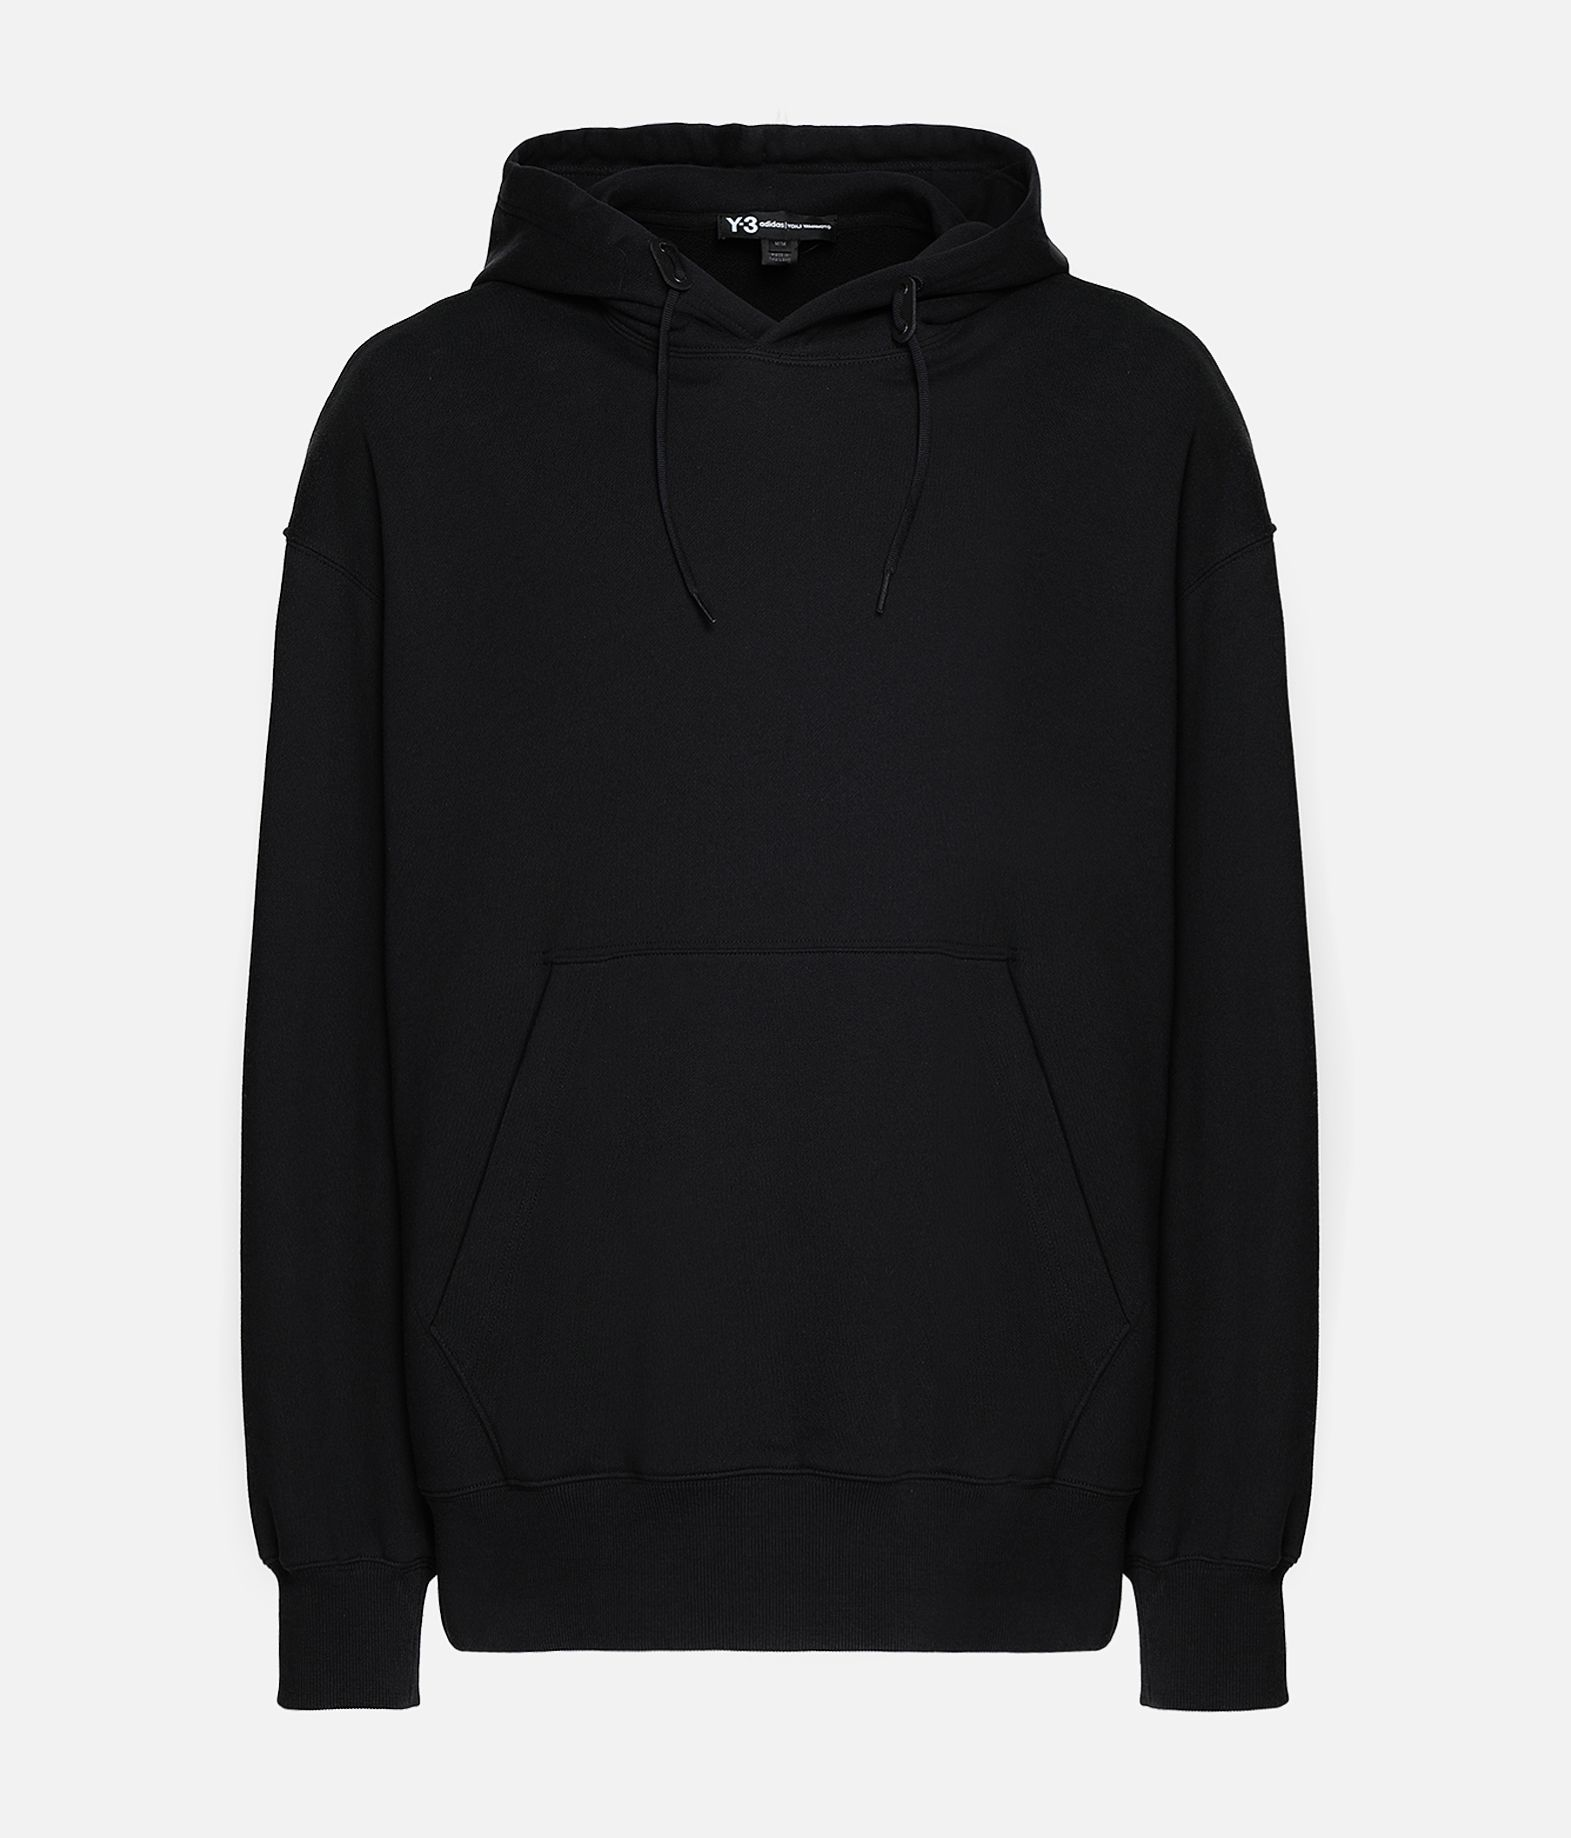 Y-3 Y-3 Toketa Print Hoodie Hooded sweatshirt Man f